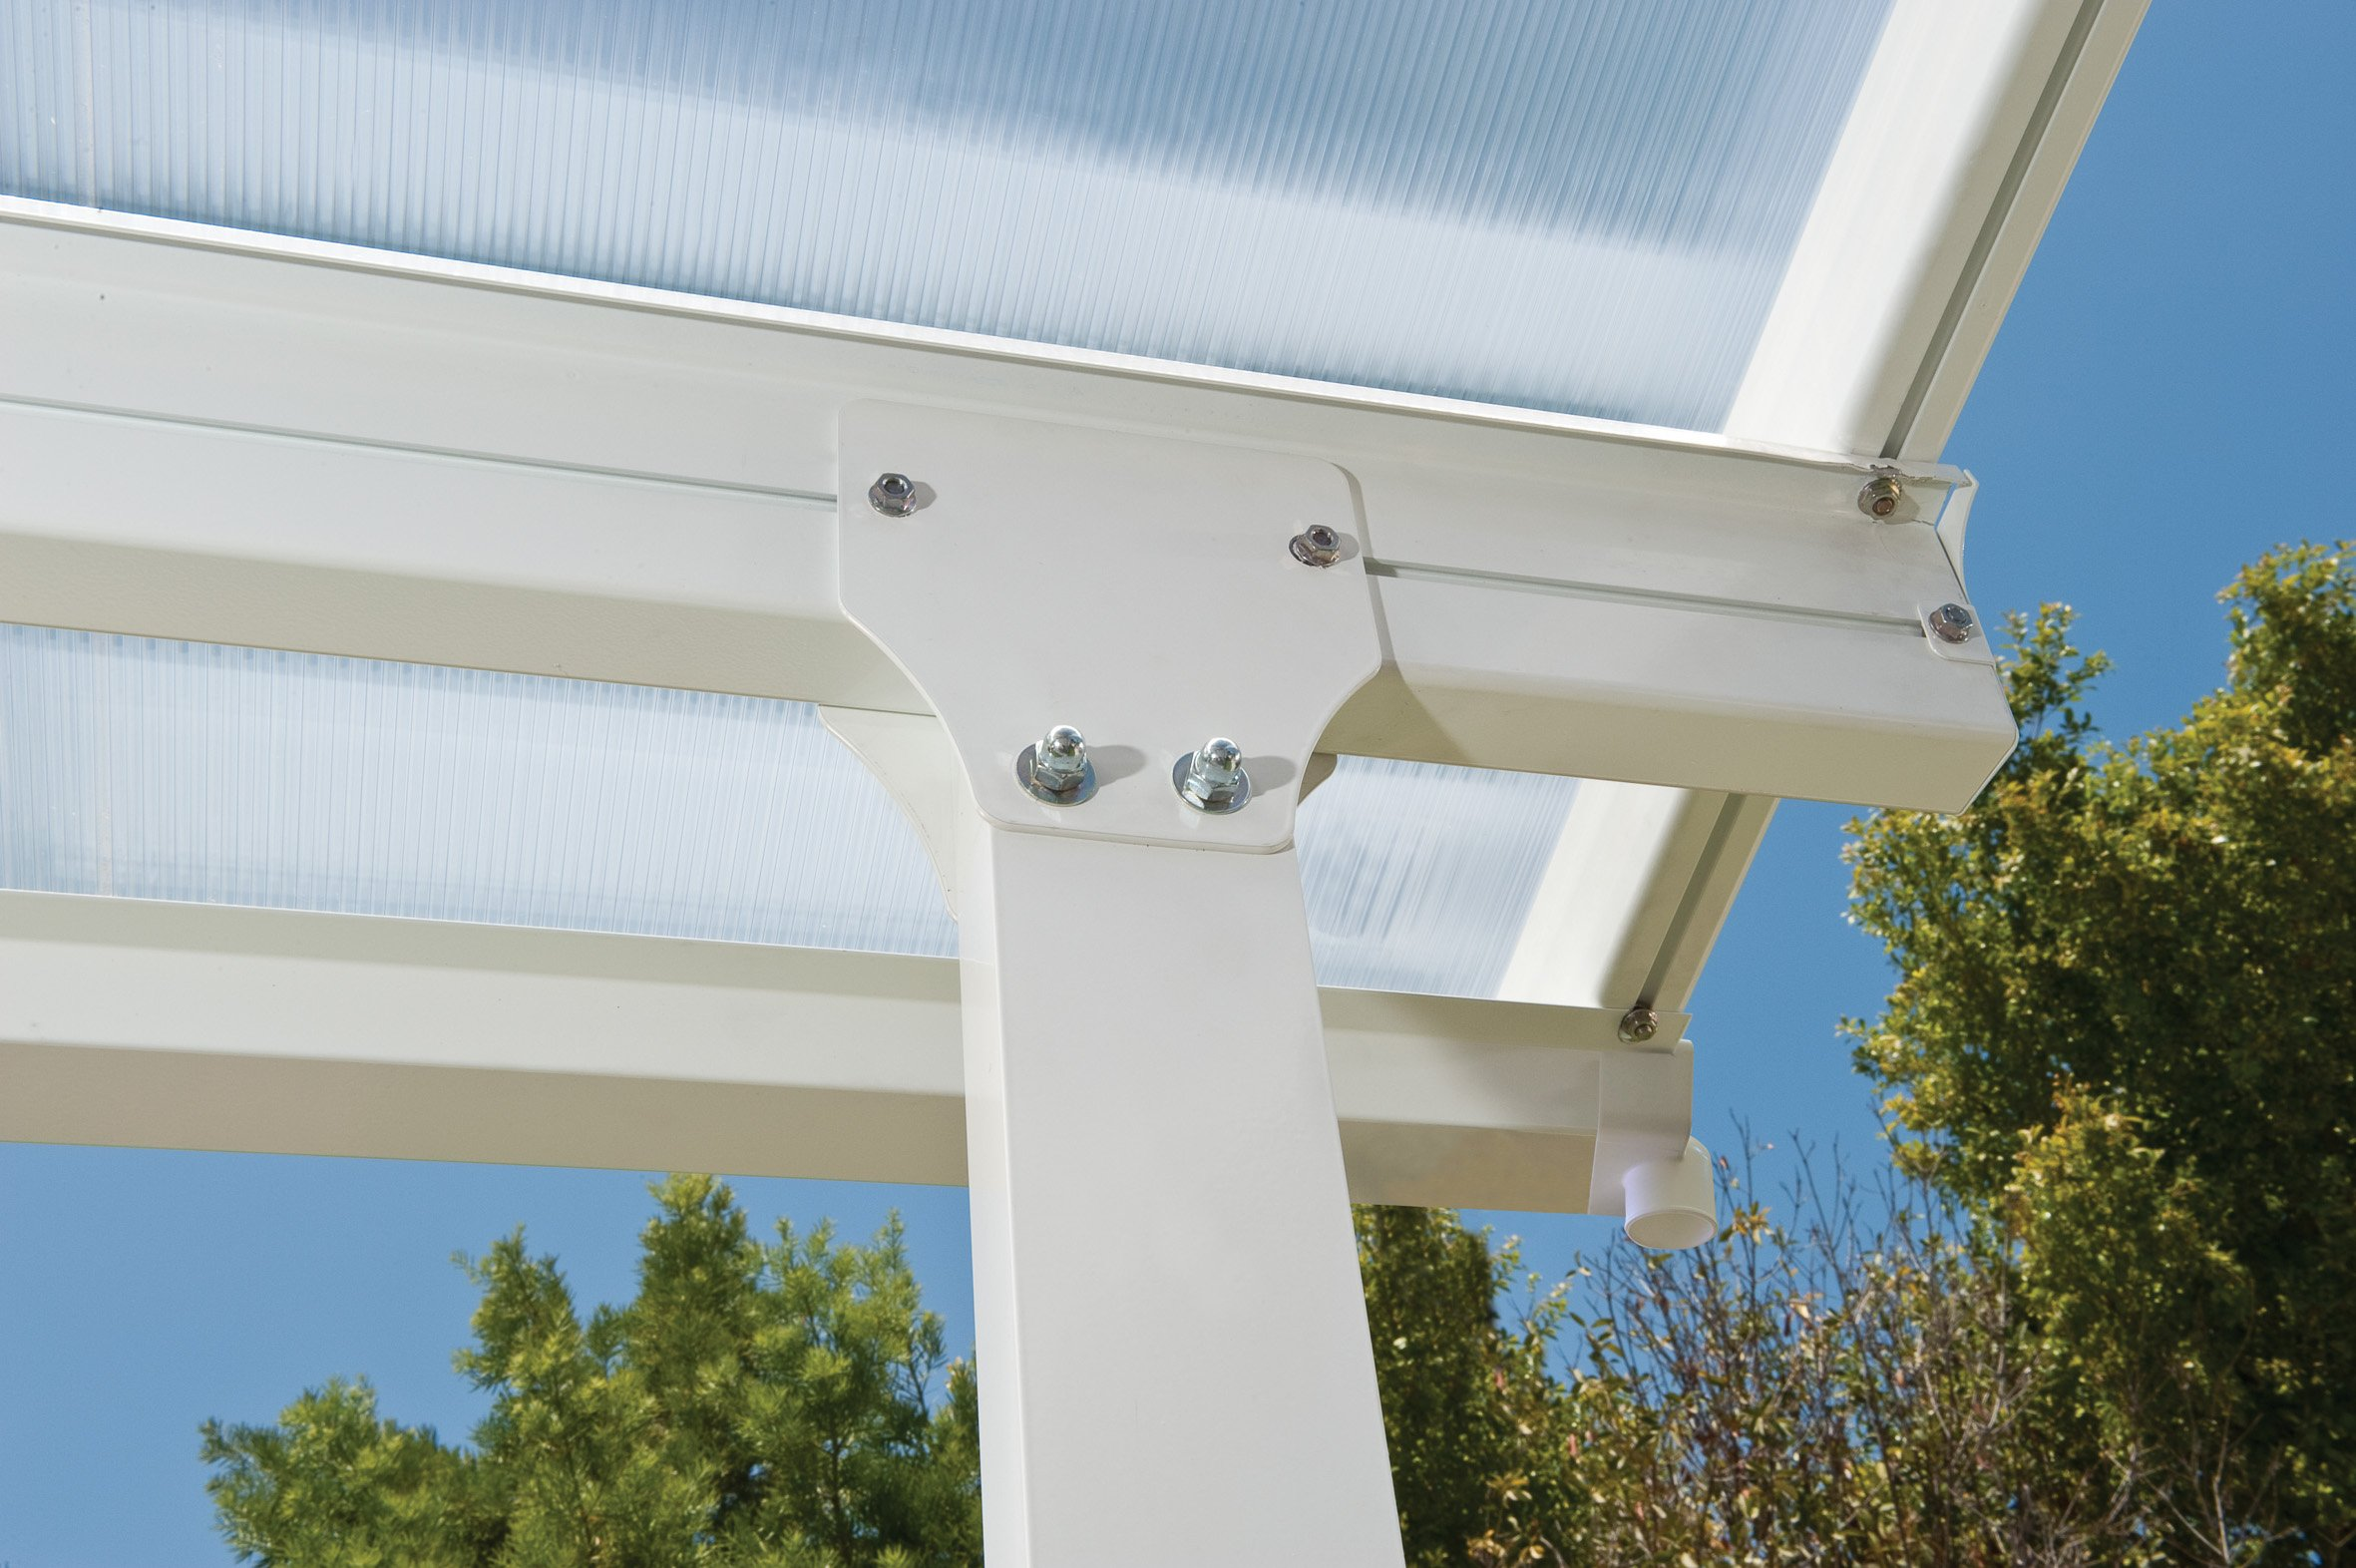 Palram Pergola Patio Cover Feria Robust Structure For Year Round Use 4x4 2 White Buy Online In Faroe Islands At Desertcart